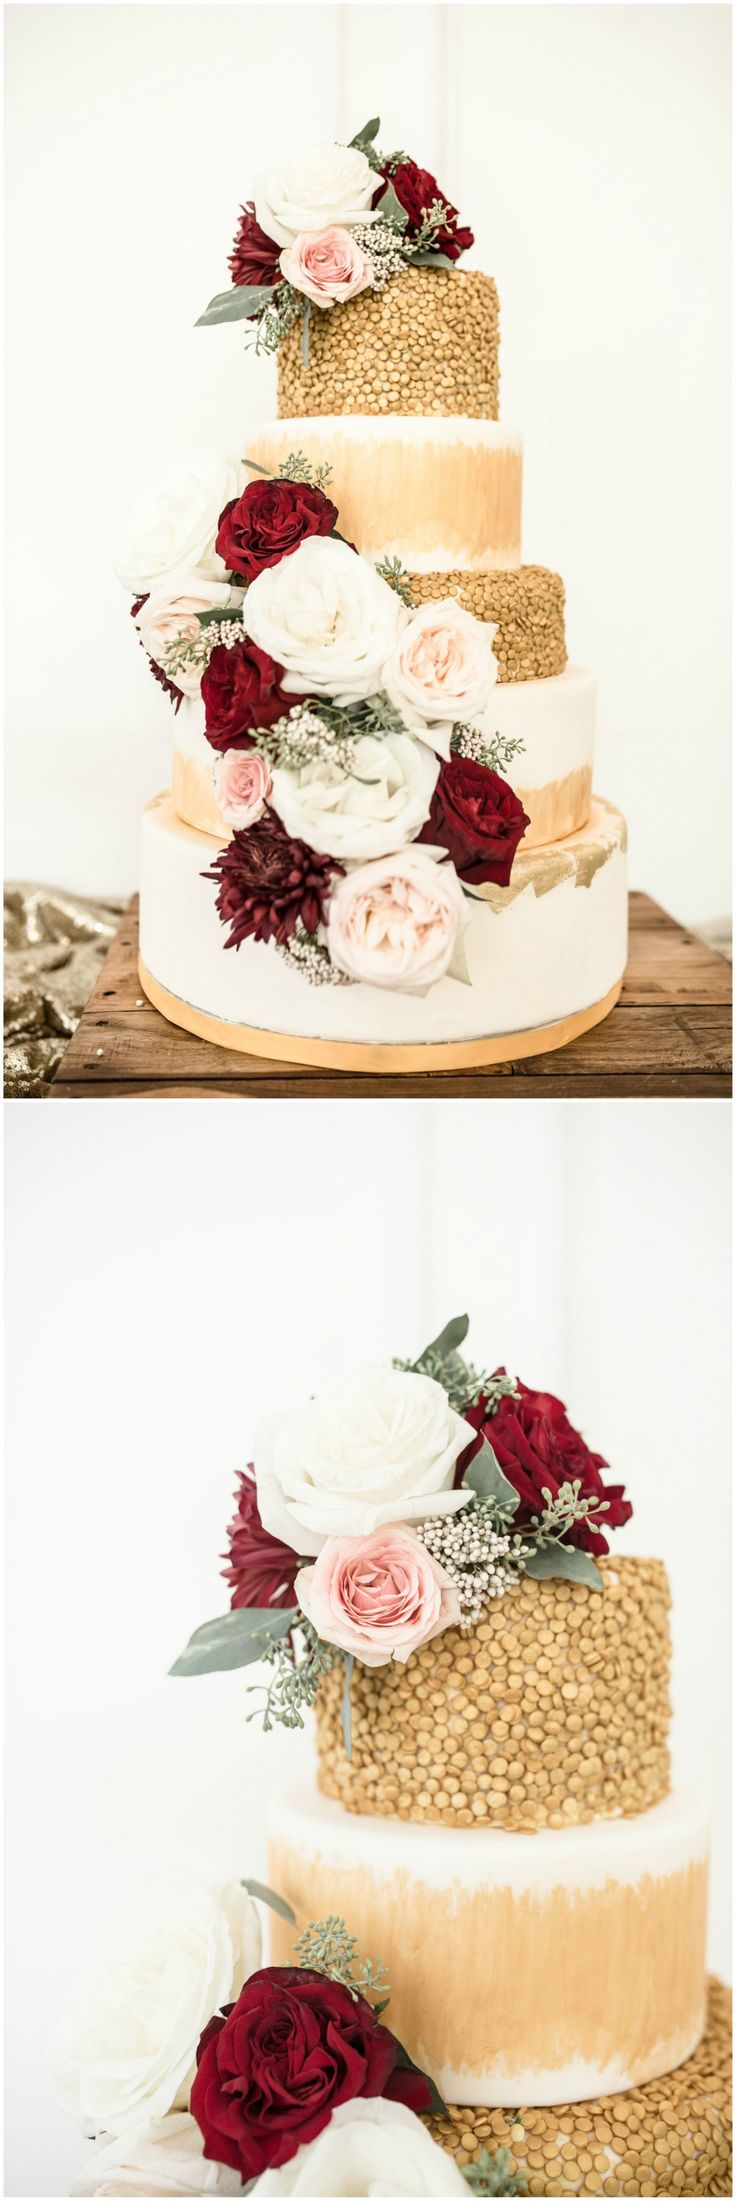 Wedding cakes, gold cake, tiered wedding cake, wedding cake with roses and seeded eucalyptus, elegant wedding cake ideas, follow this board for more wedding cake and dessert inspiration // Leslie Perkins Photography